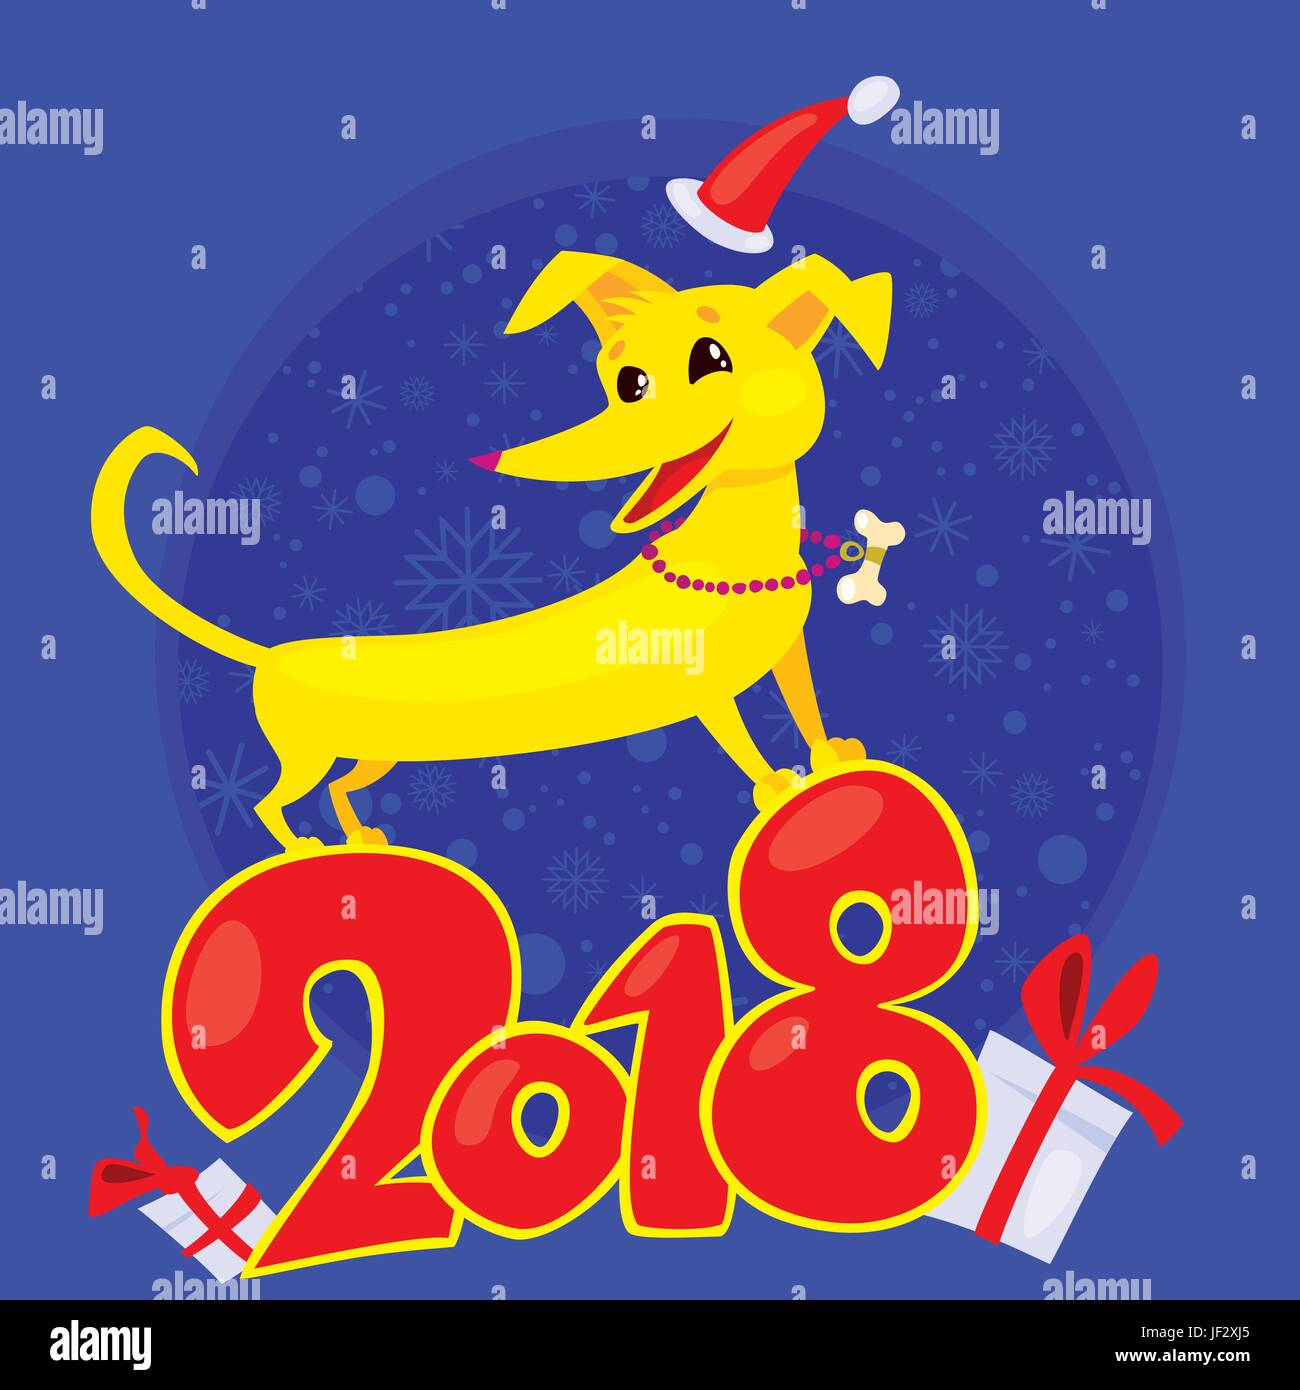 New Year 2018: Year of the Dog in the Eastern Horoscope